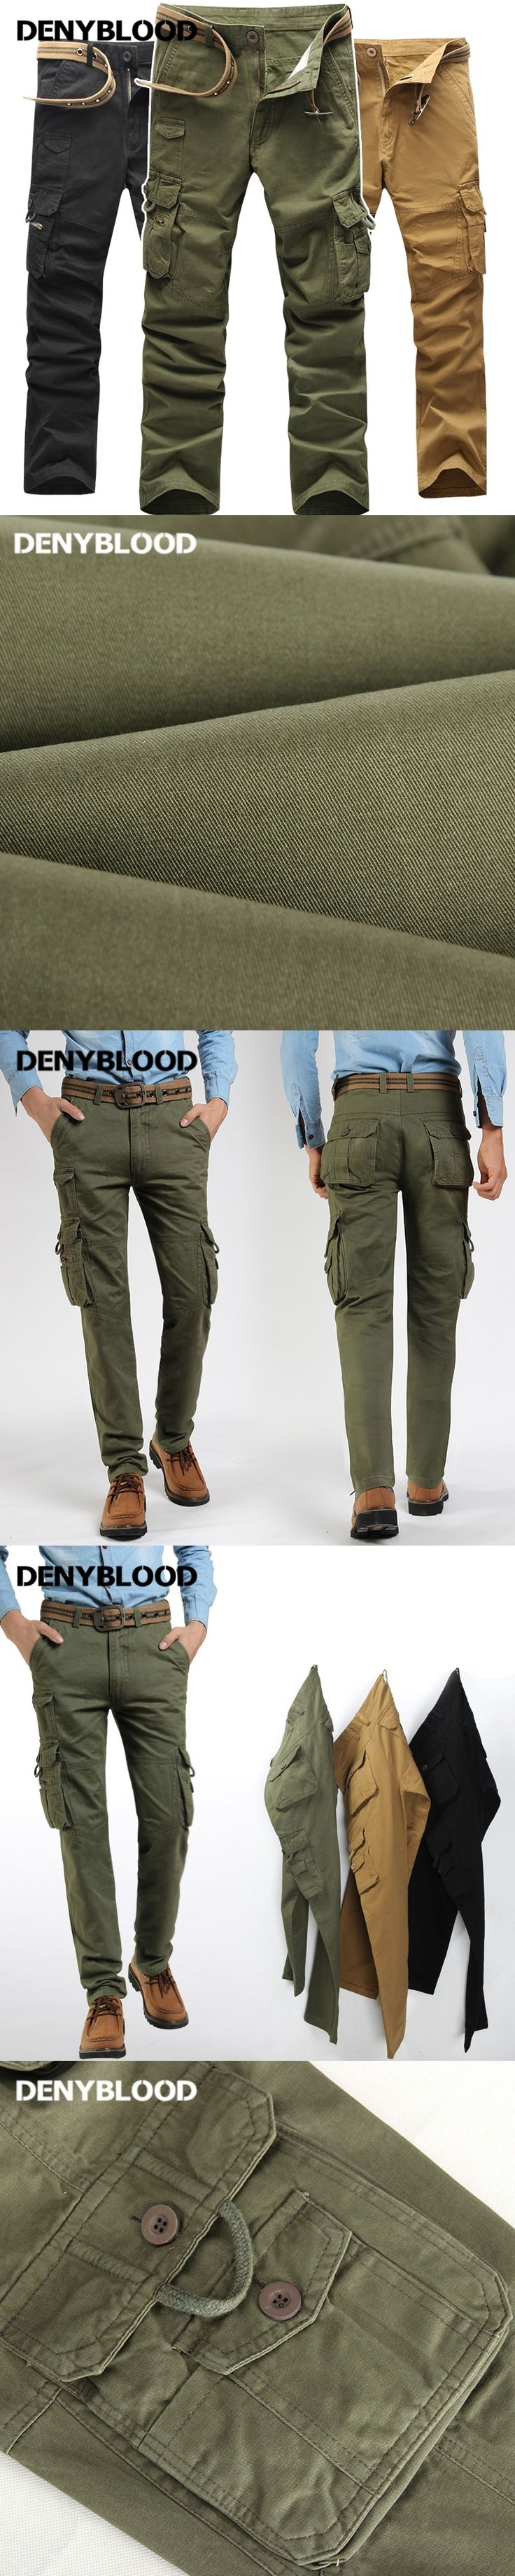 Denyblood Jeans Men Cargo Pants Multi Pocket Military Army Green Chinos Mens Outwear Casual Pants Long Trousers 0471